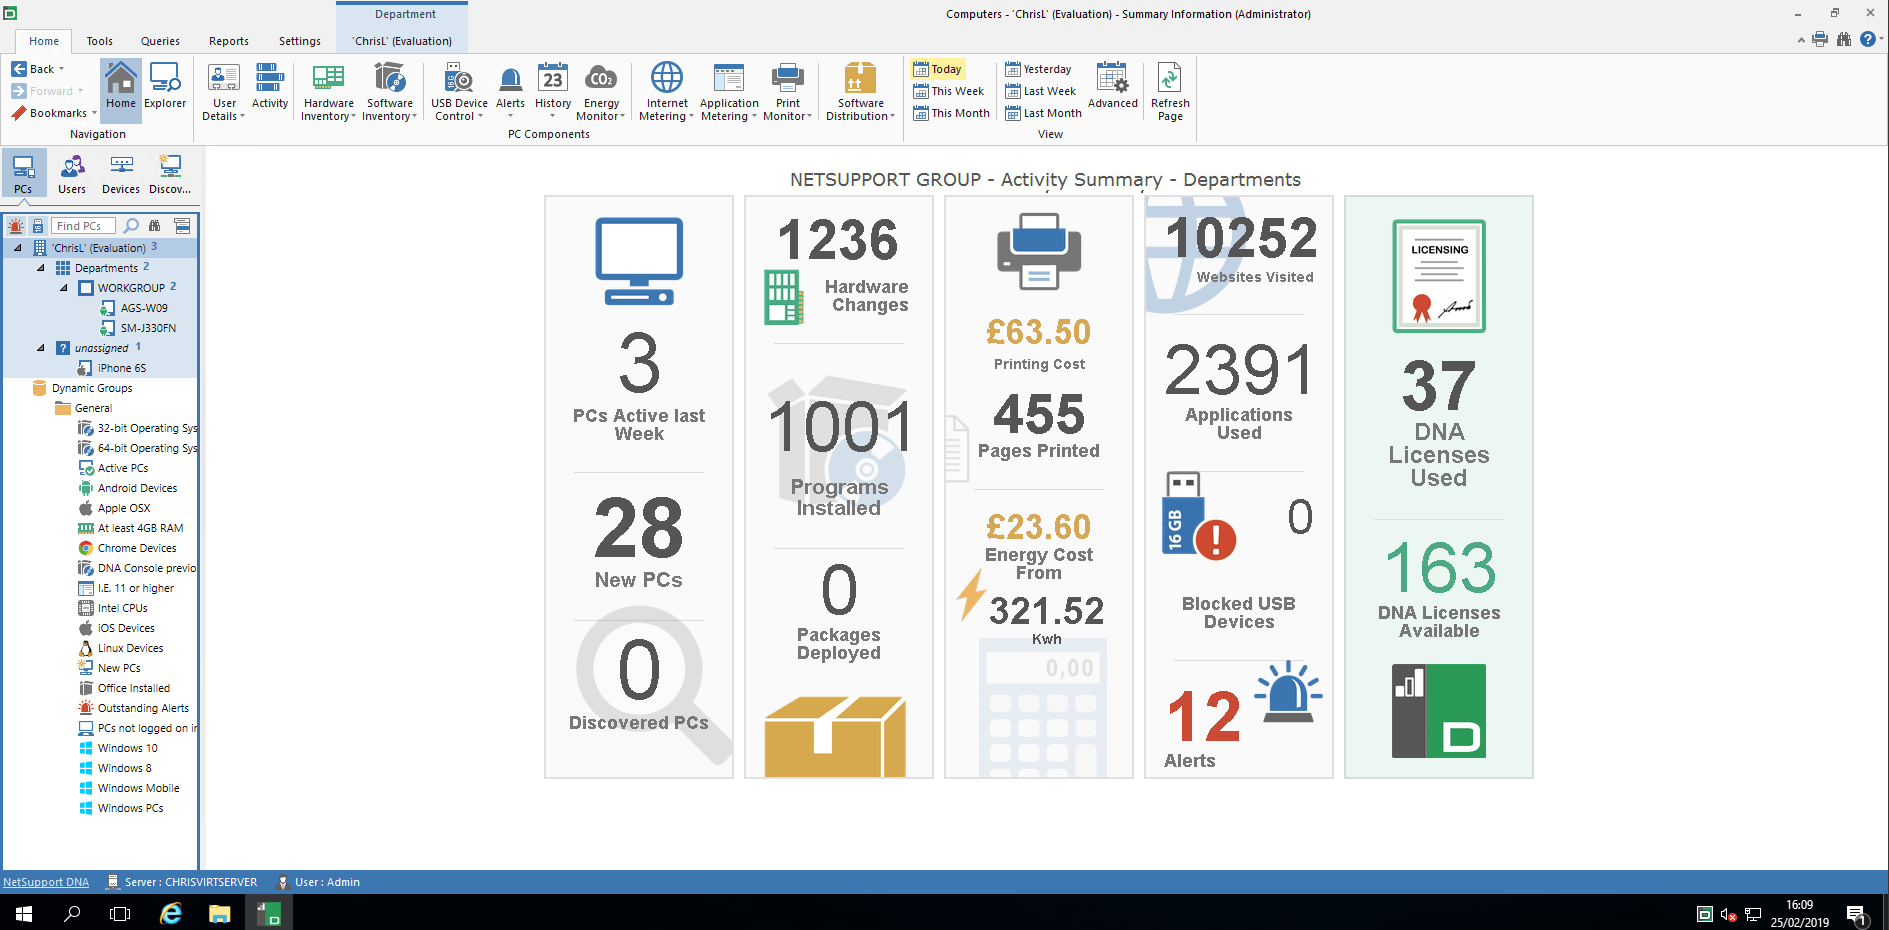 NetSupport DNA Dashboard - Intuitive welcome screen with key stats for the organization.